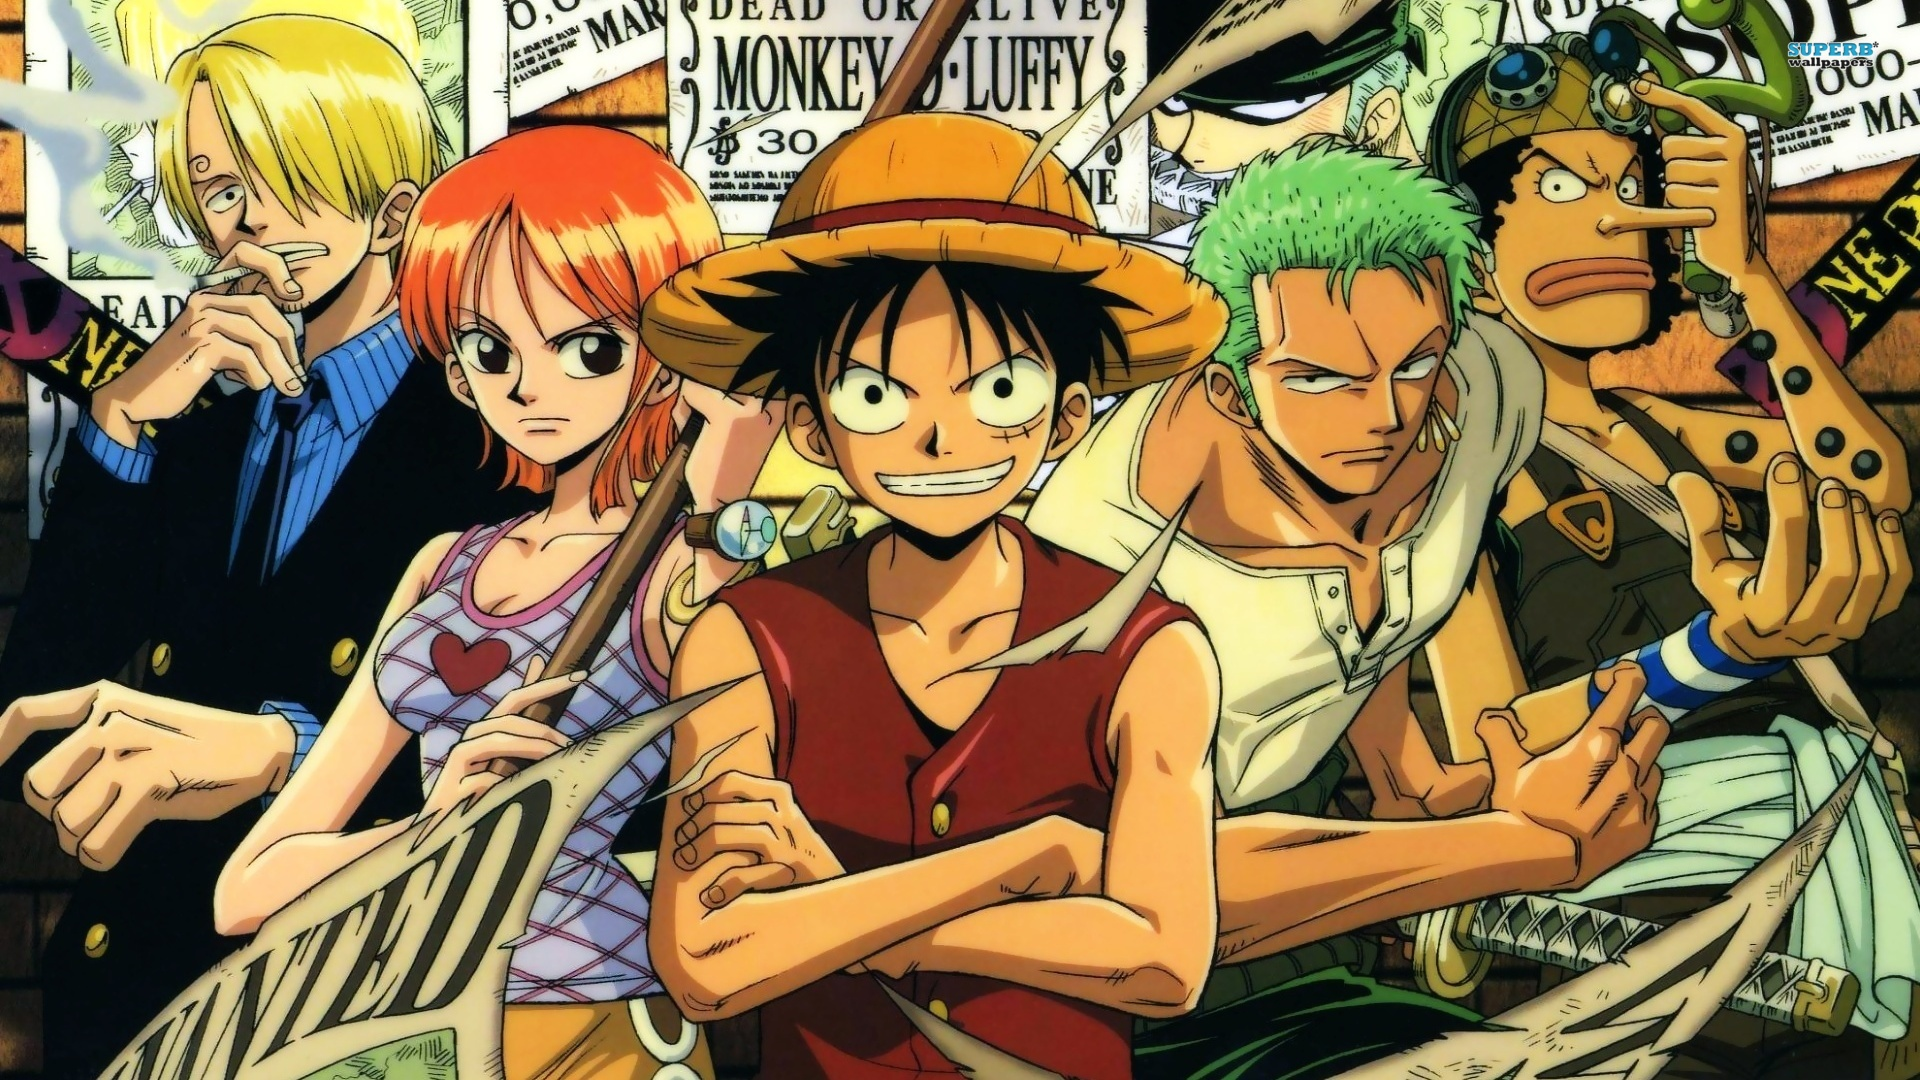 1192 One Piece HD Wallpapers | Backgrounds - Wallpaper Abyss